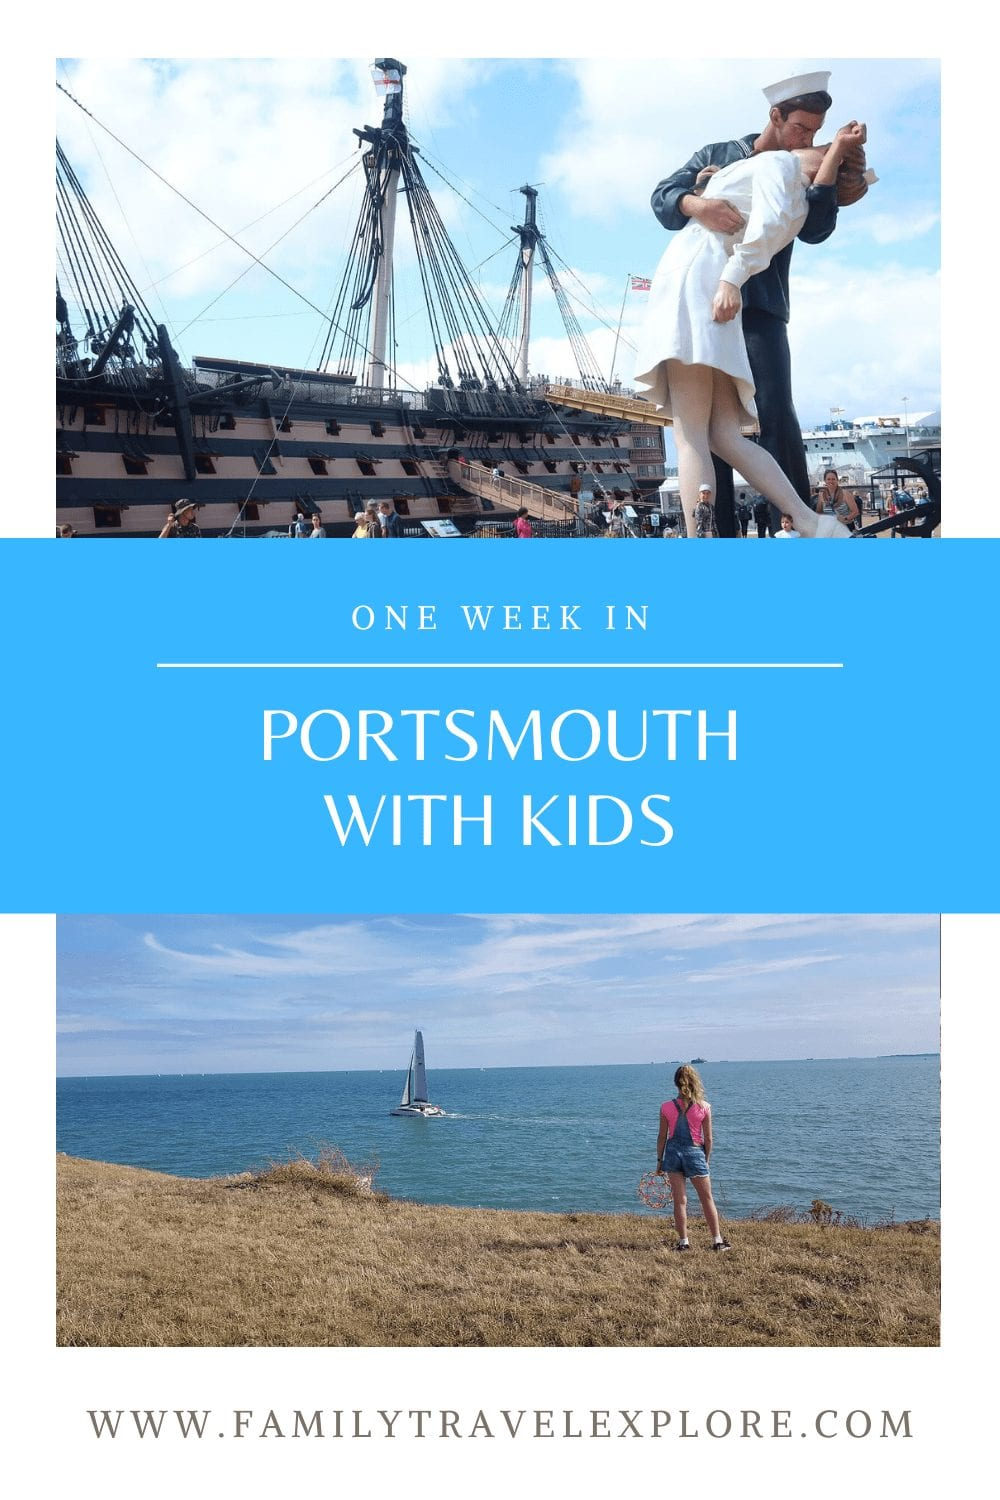 One Outstanding Week In Portsmouth With Kids - A Photo Essay